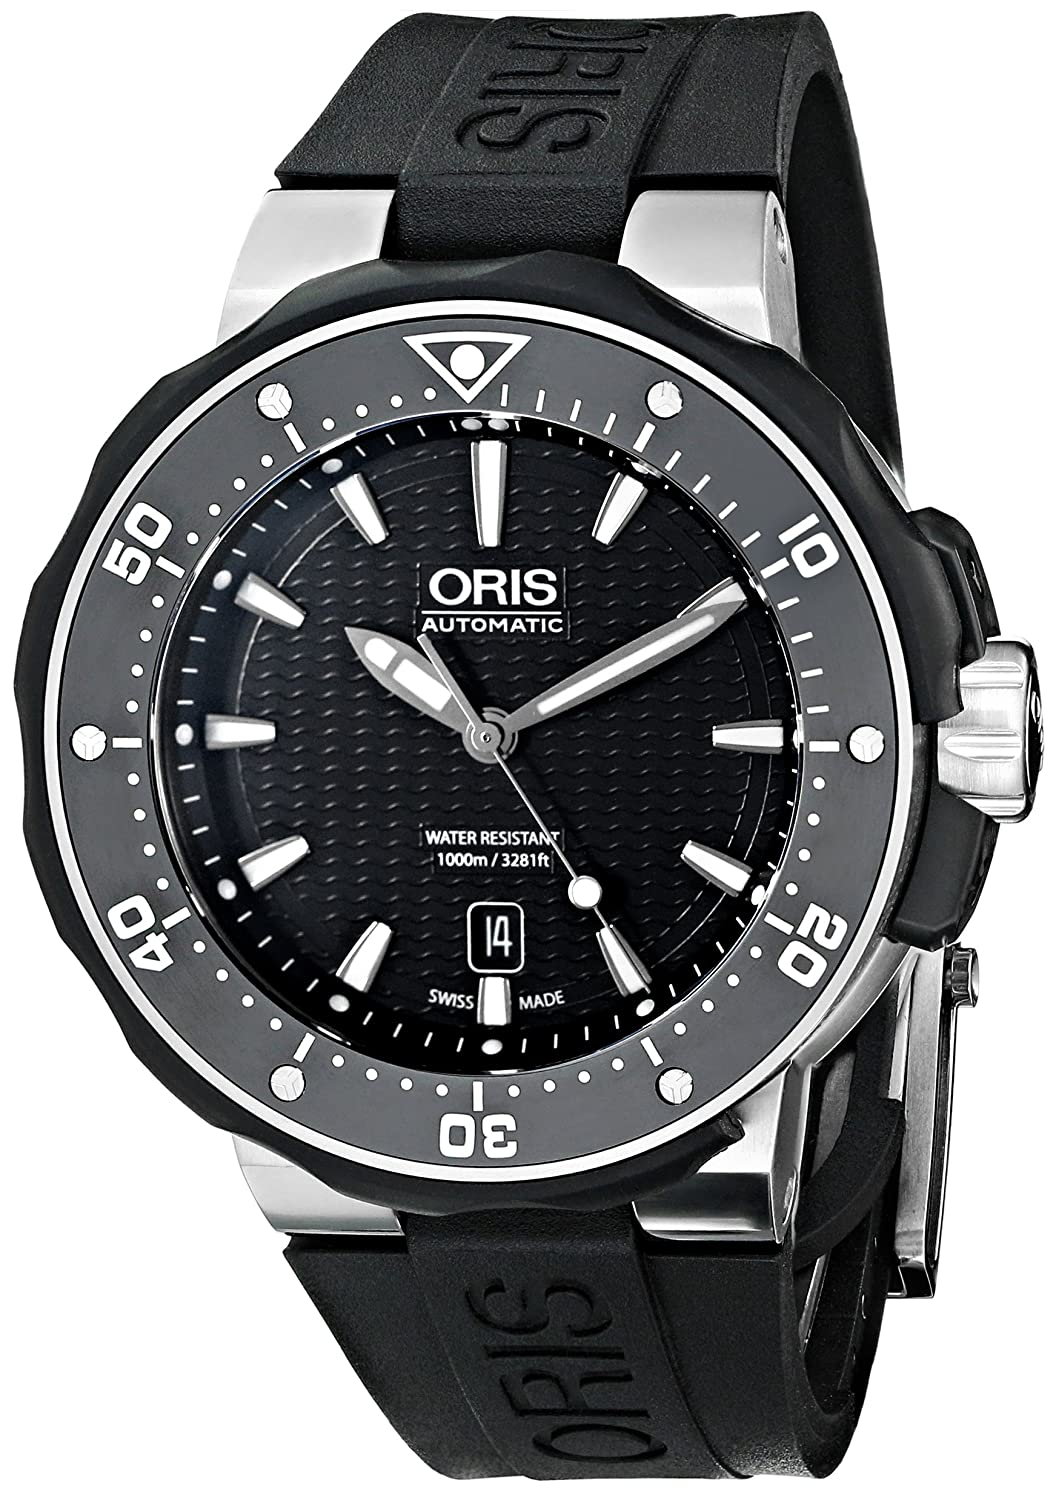 crown propilot watches watch five baselworld big divers sixty bronze caliber oris